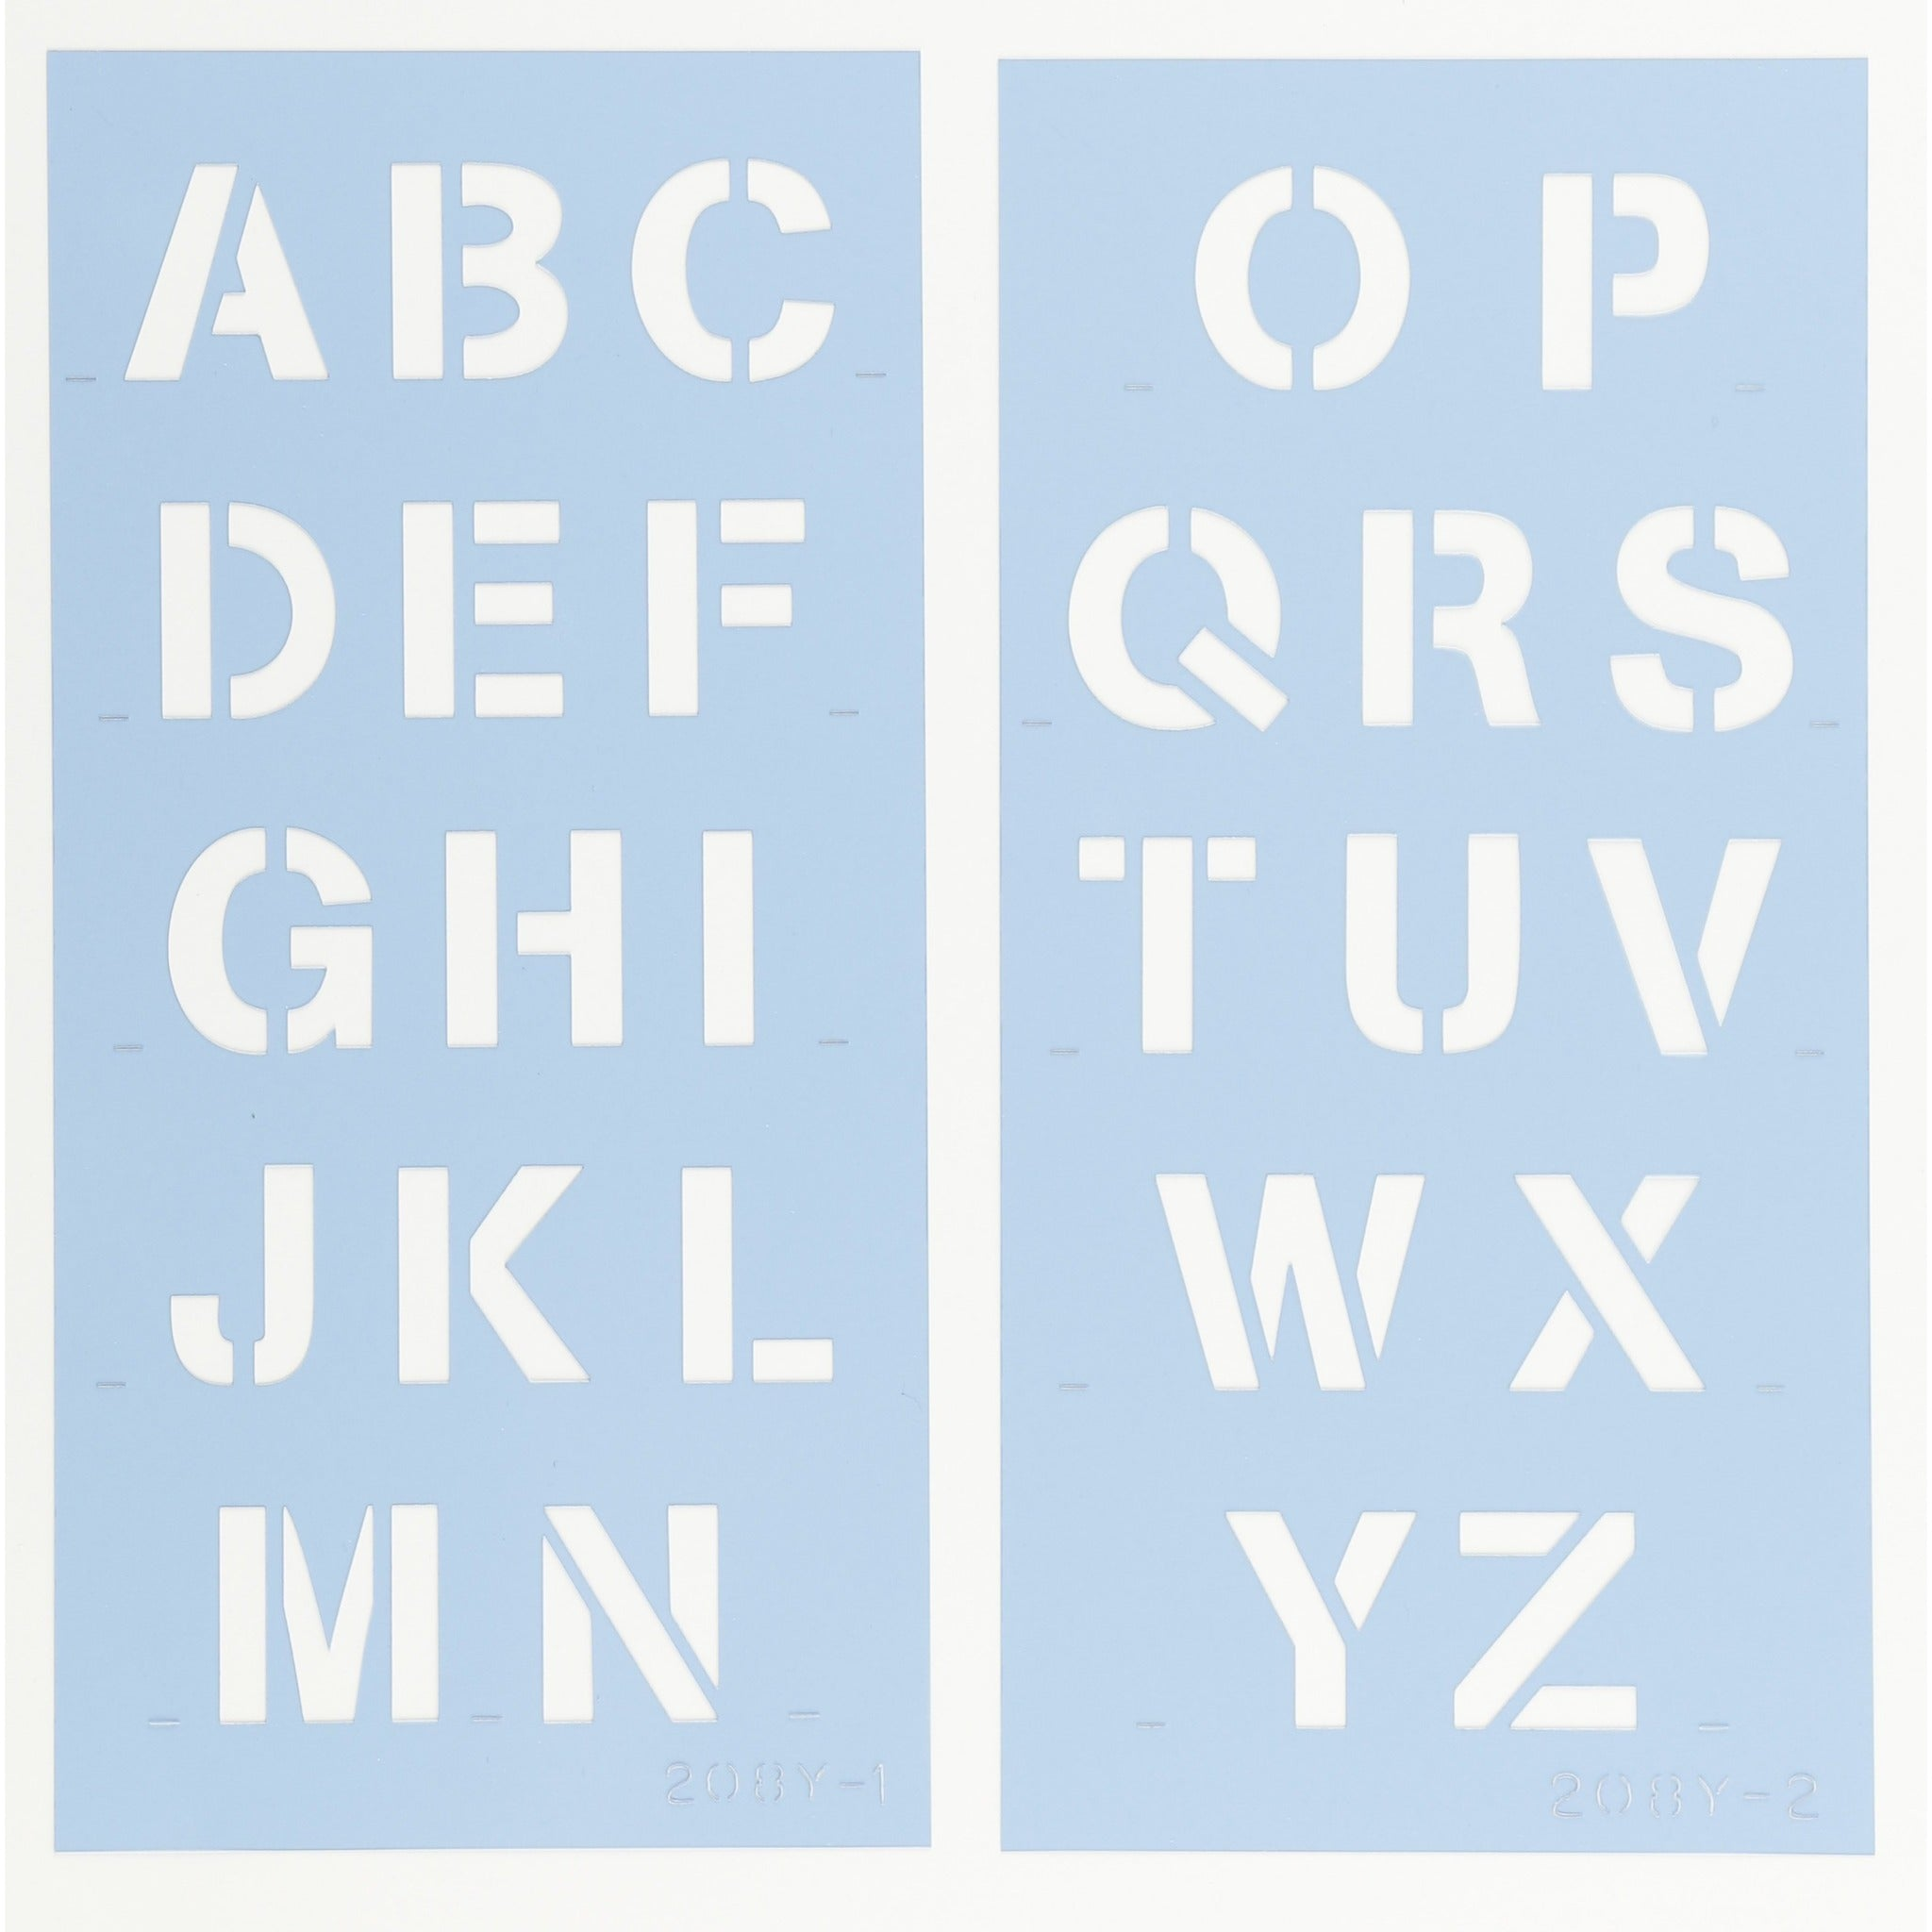 Arial Letter & Number Stencil Set by Crafty Stencils